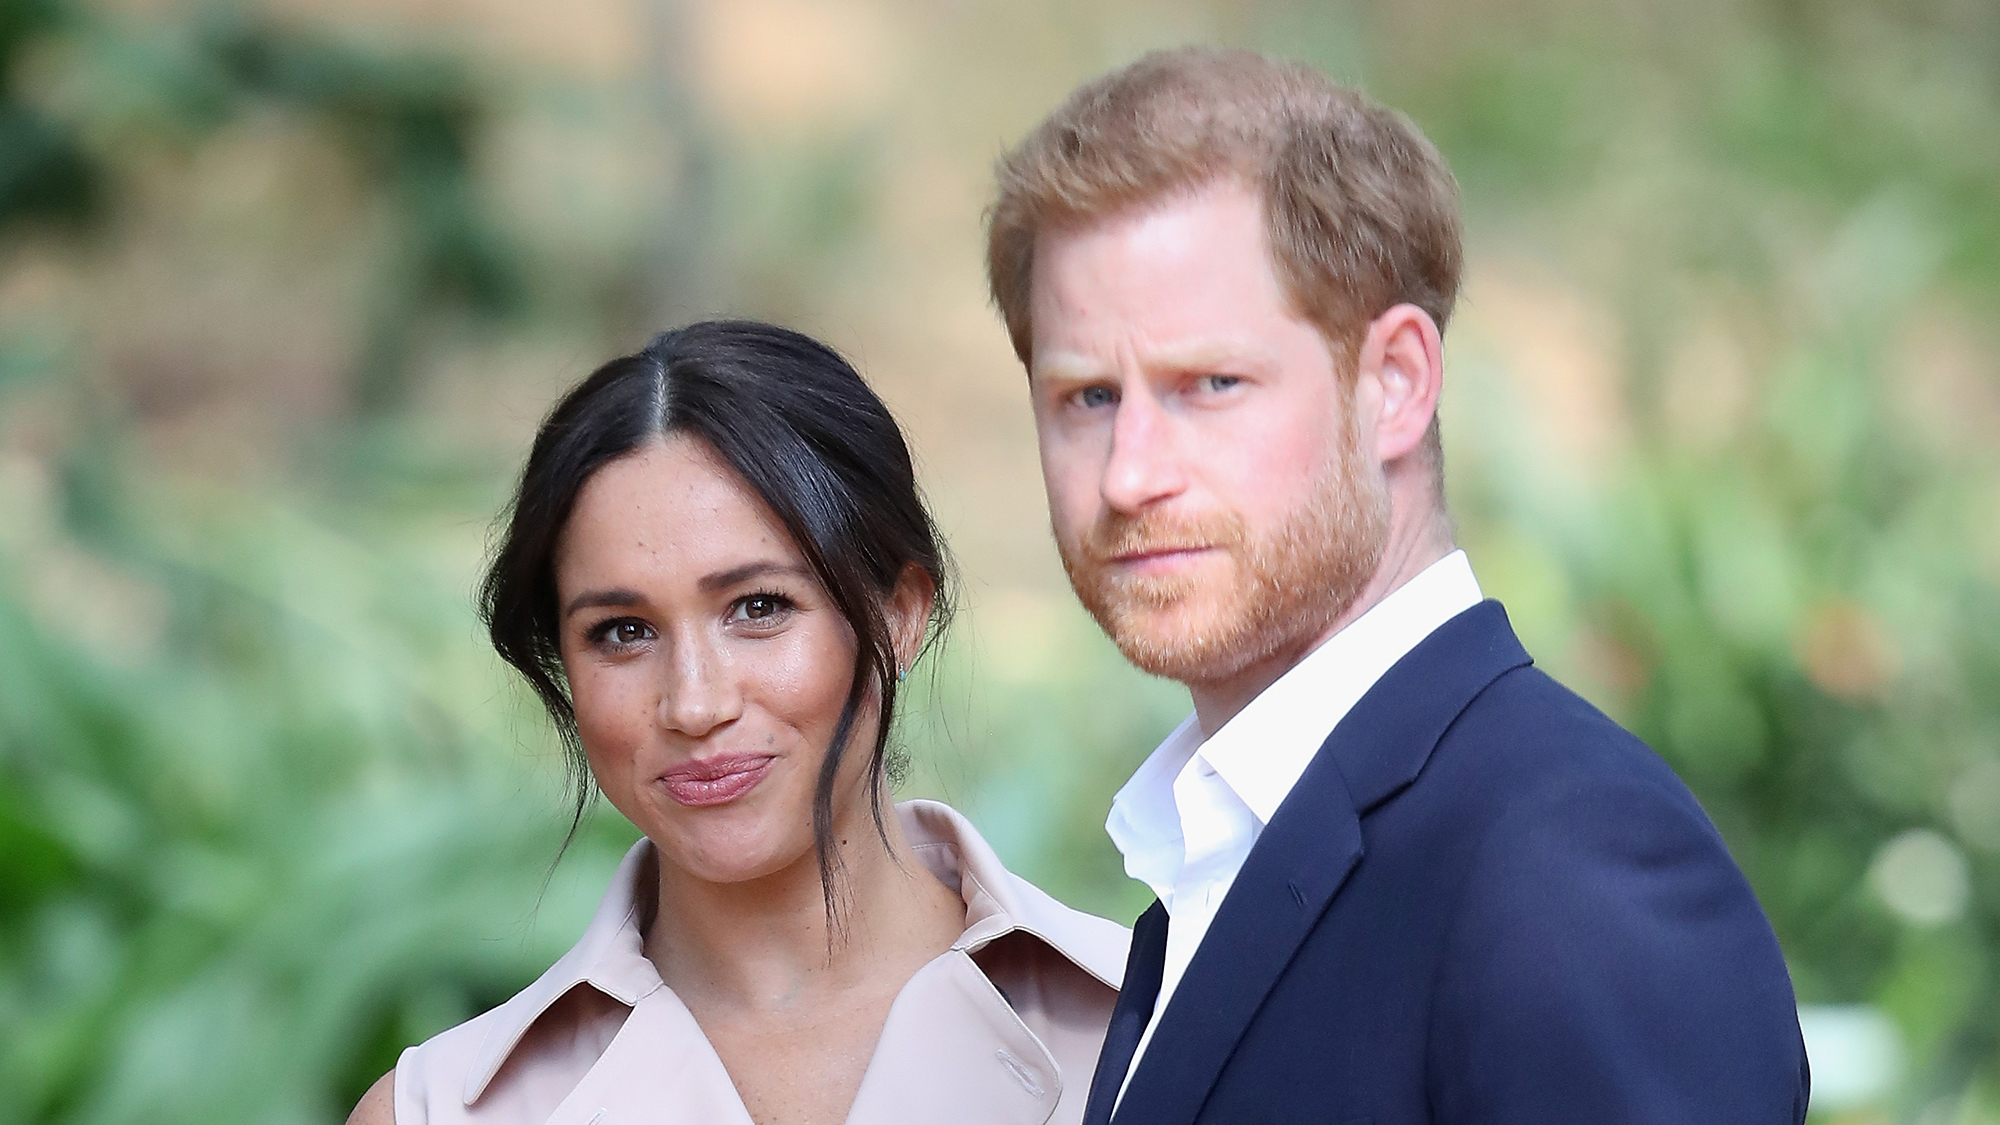 Prince Harry and Meghan Meghan's Sussex Royal trademark plans have been blocked